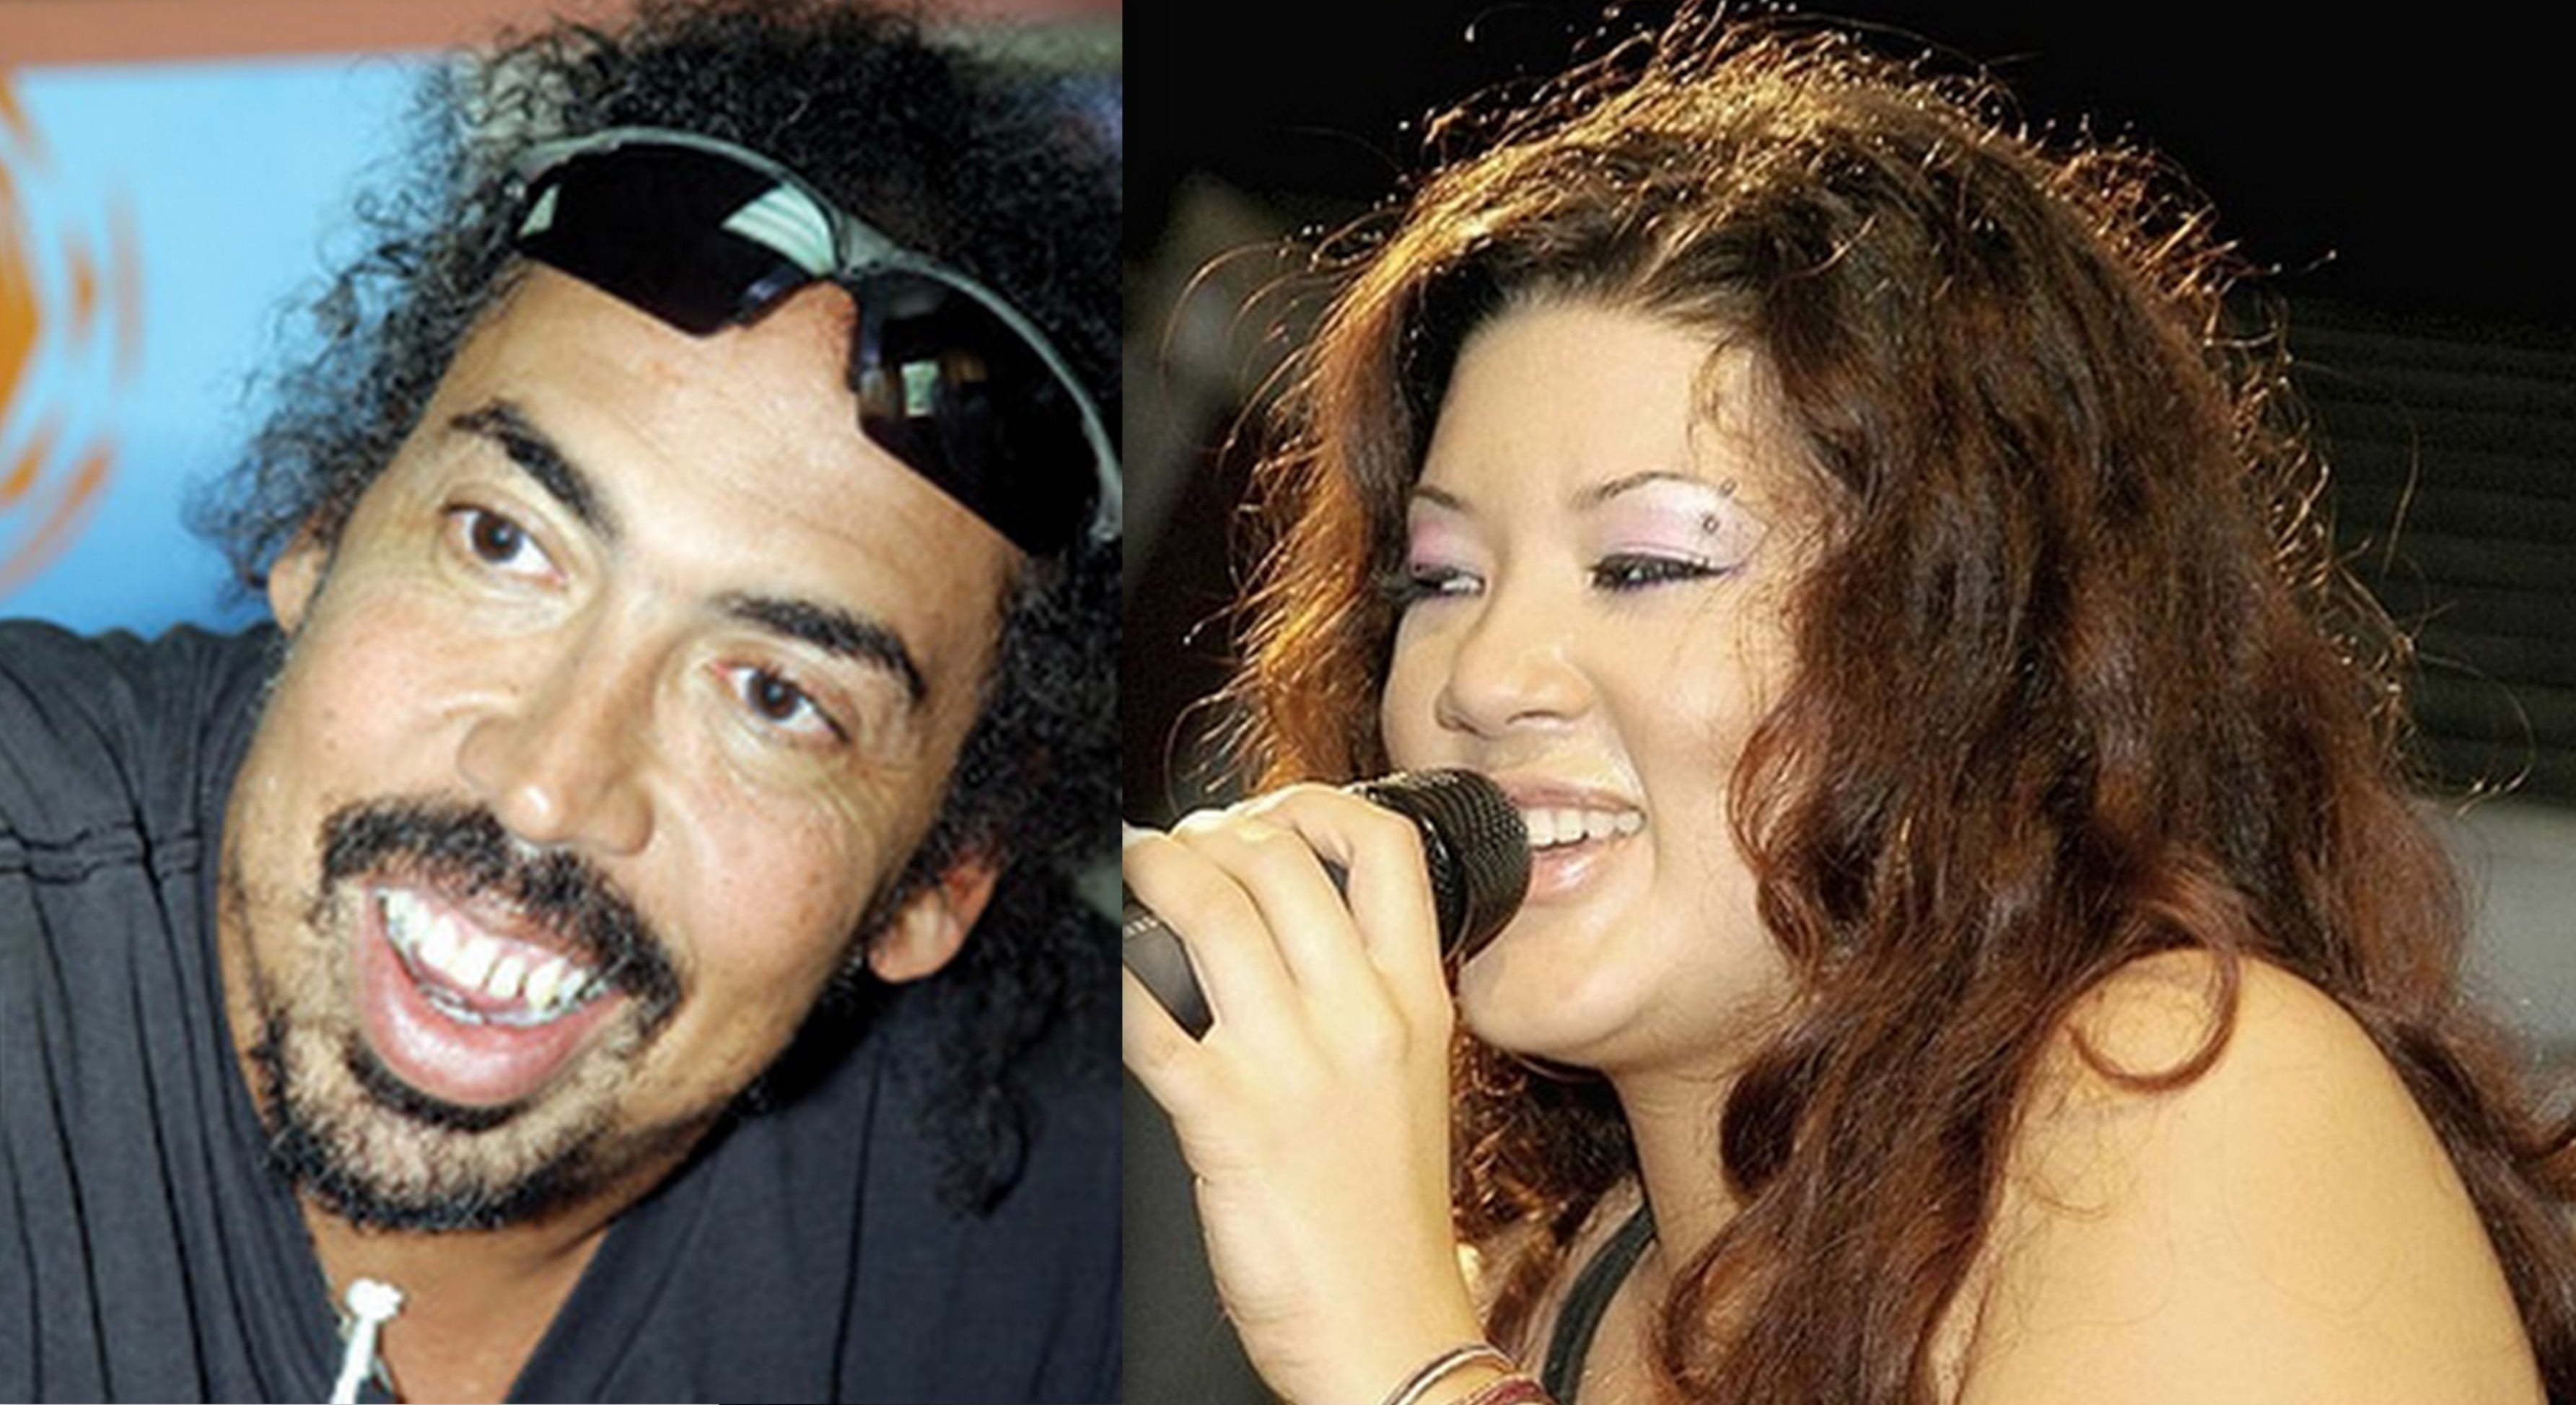 Third World and Tessanne Chin